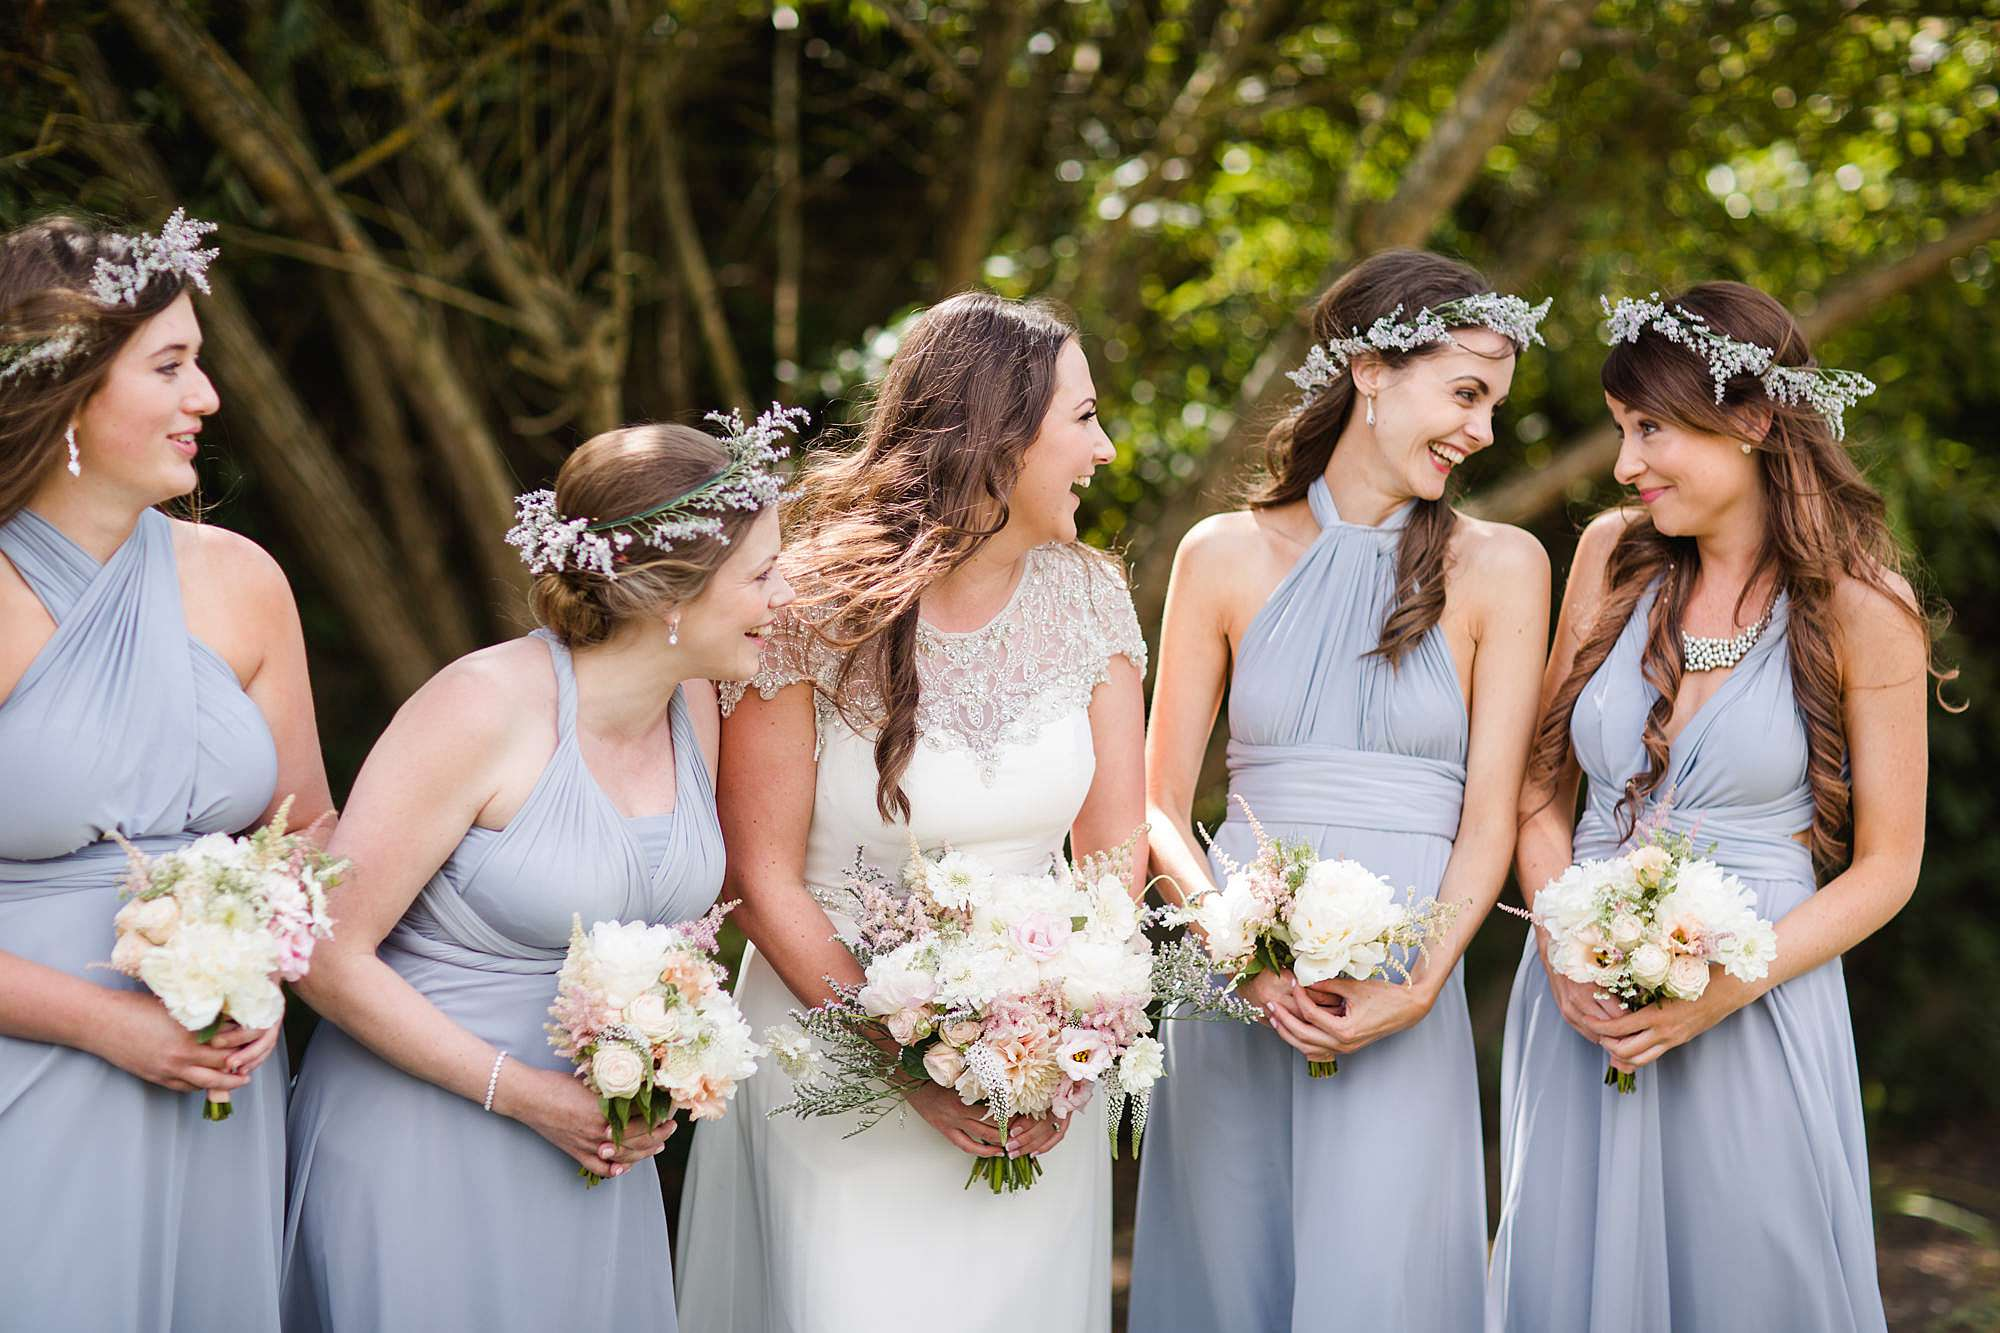 fun outdoor wedding bride and bridesmaids laugh together